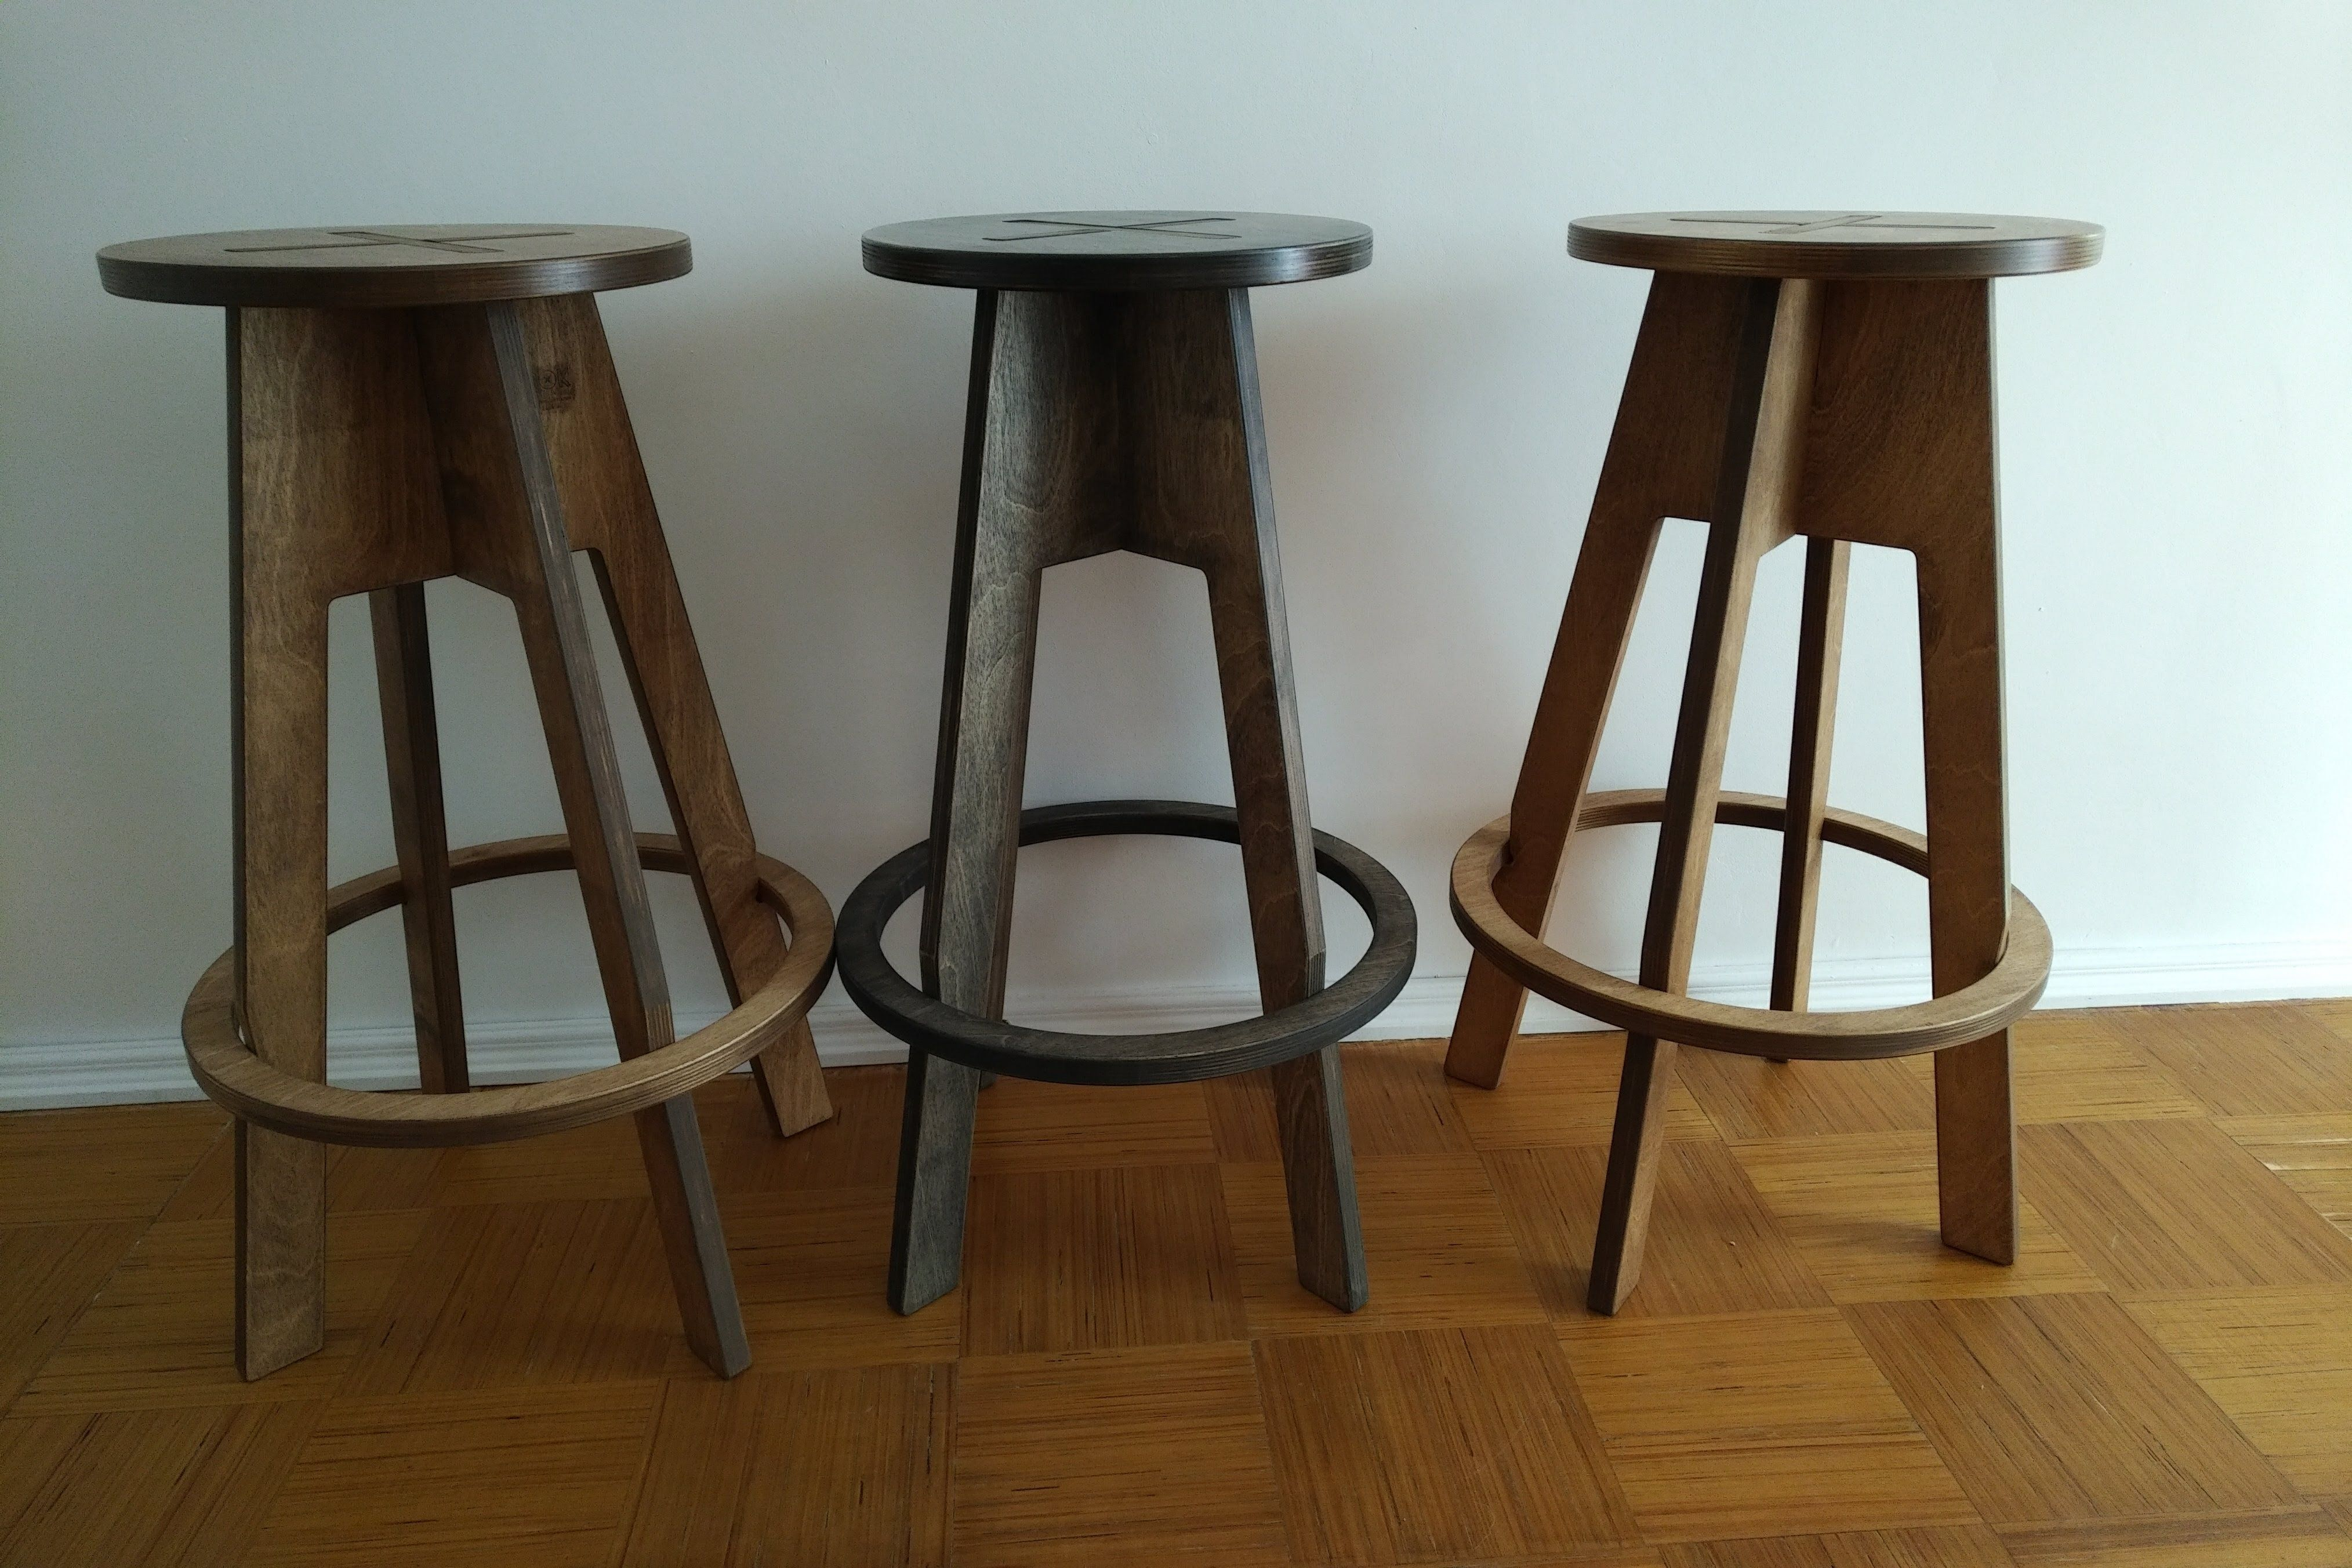 Stools For A Breakfast Bar Wooden Bar Stool Kitchen Ideas In